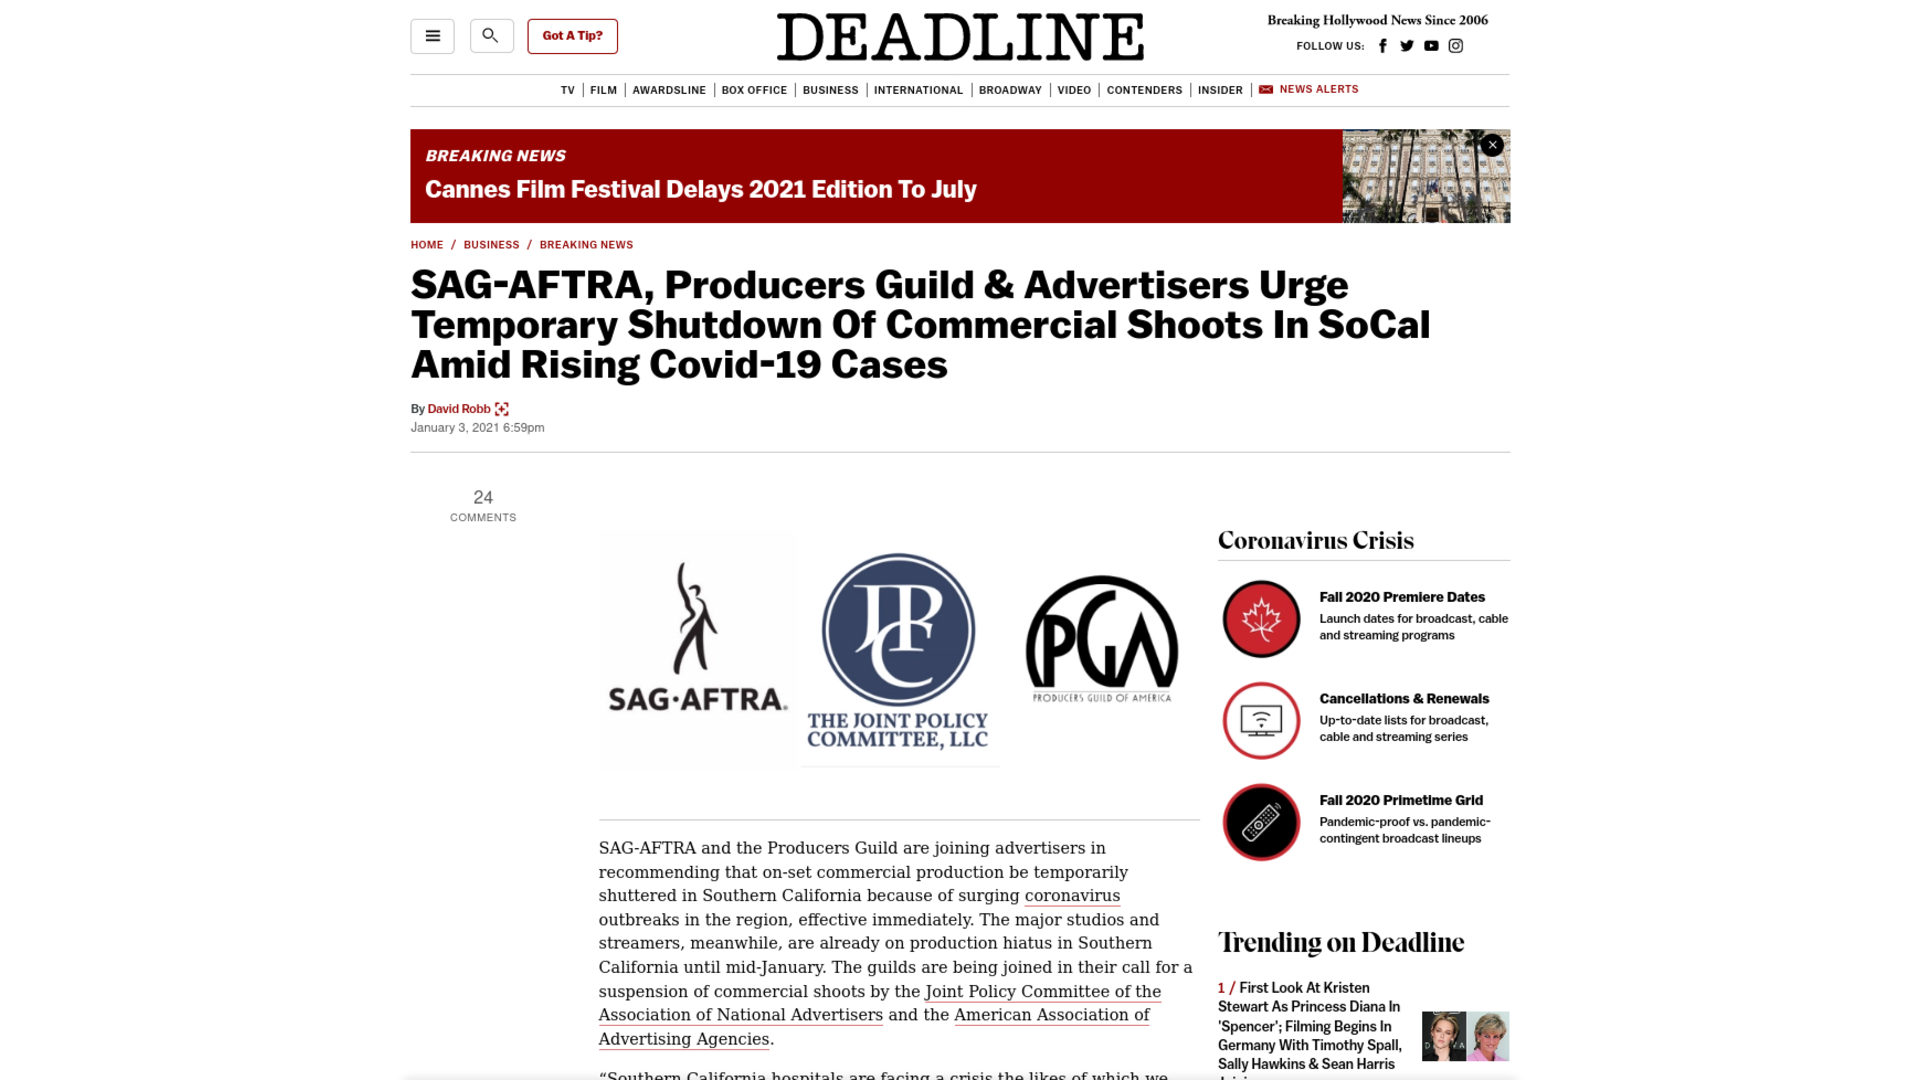 Fairness Rocks News SAG-AFTRA, Producers Guild & Advertisers Urge Temporary Shutdown Of Commercial Shoots In SoCal Amid Rising Covid-19 Cases